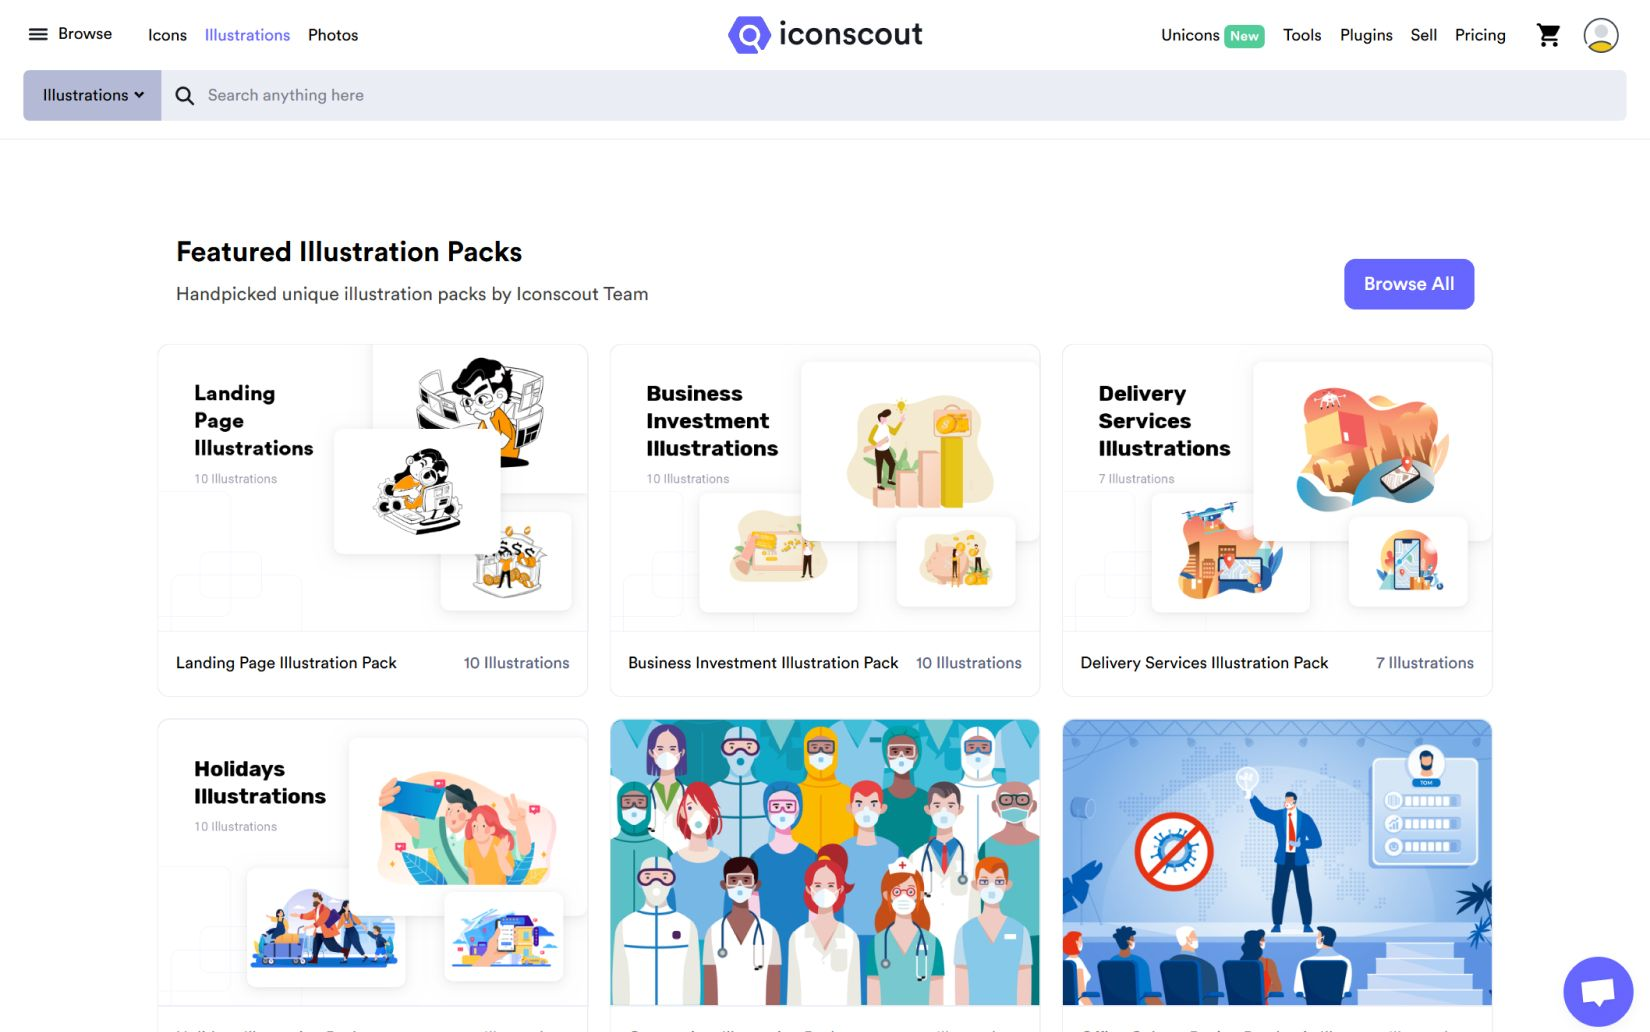 iconscout as a source for downloading illustrations